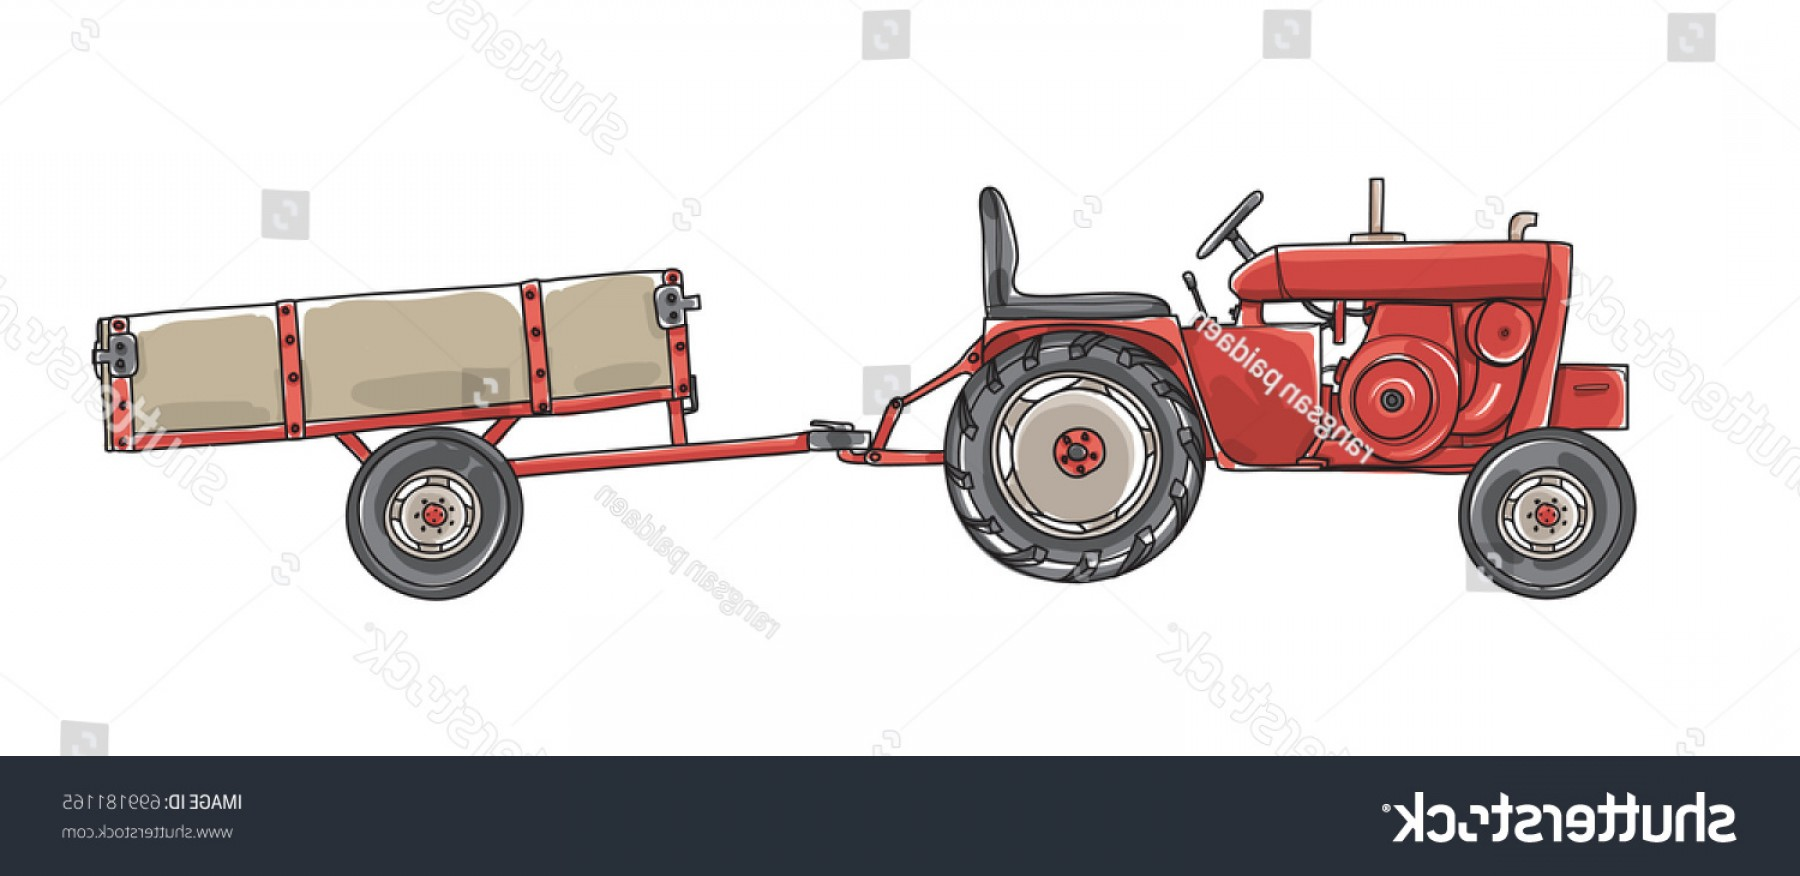 Vintage Tractor Vector Art: Antique Tractors Tipping Trailer Vintage Hand